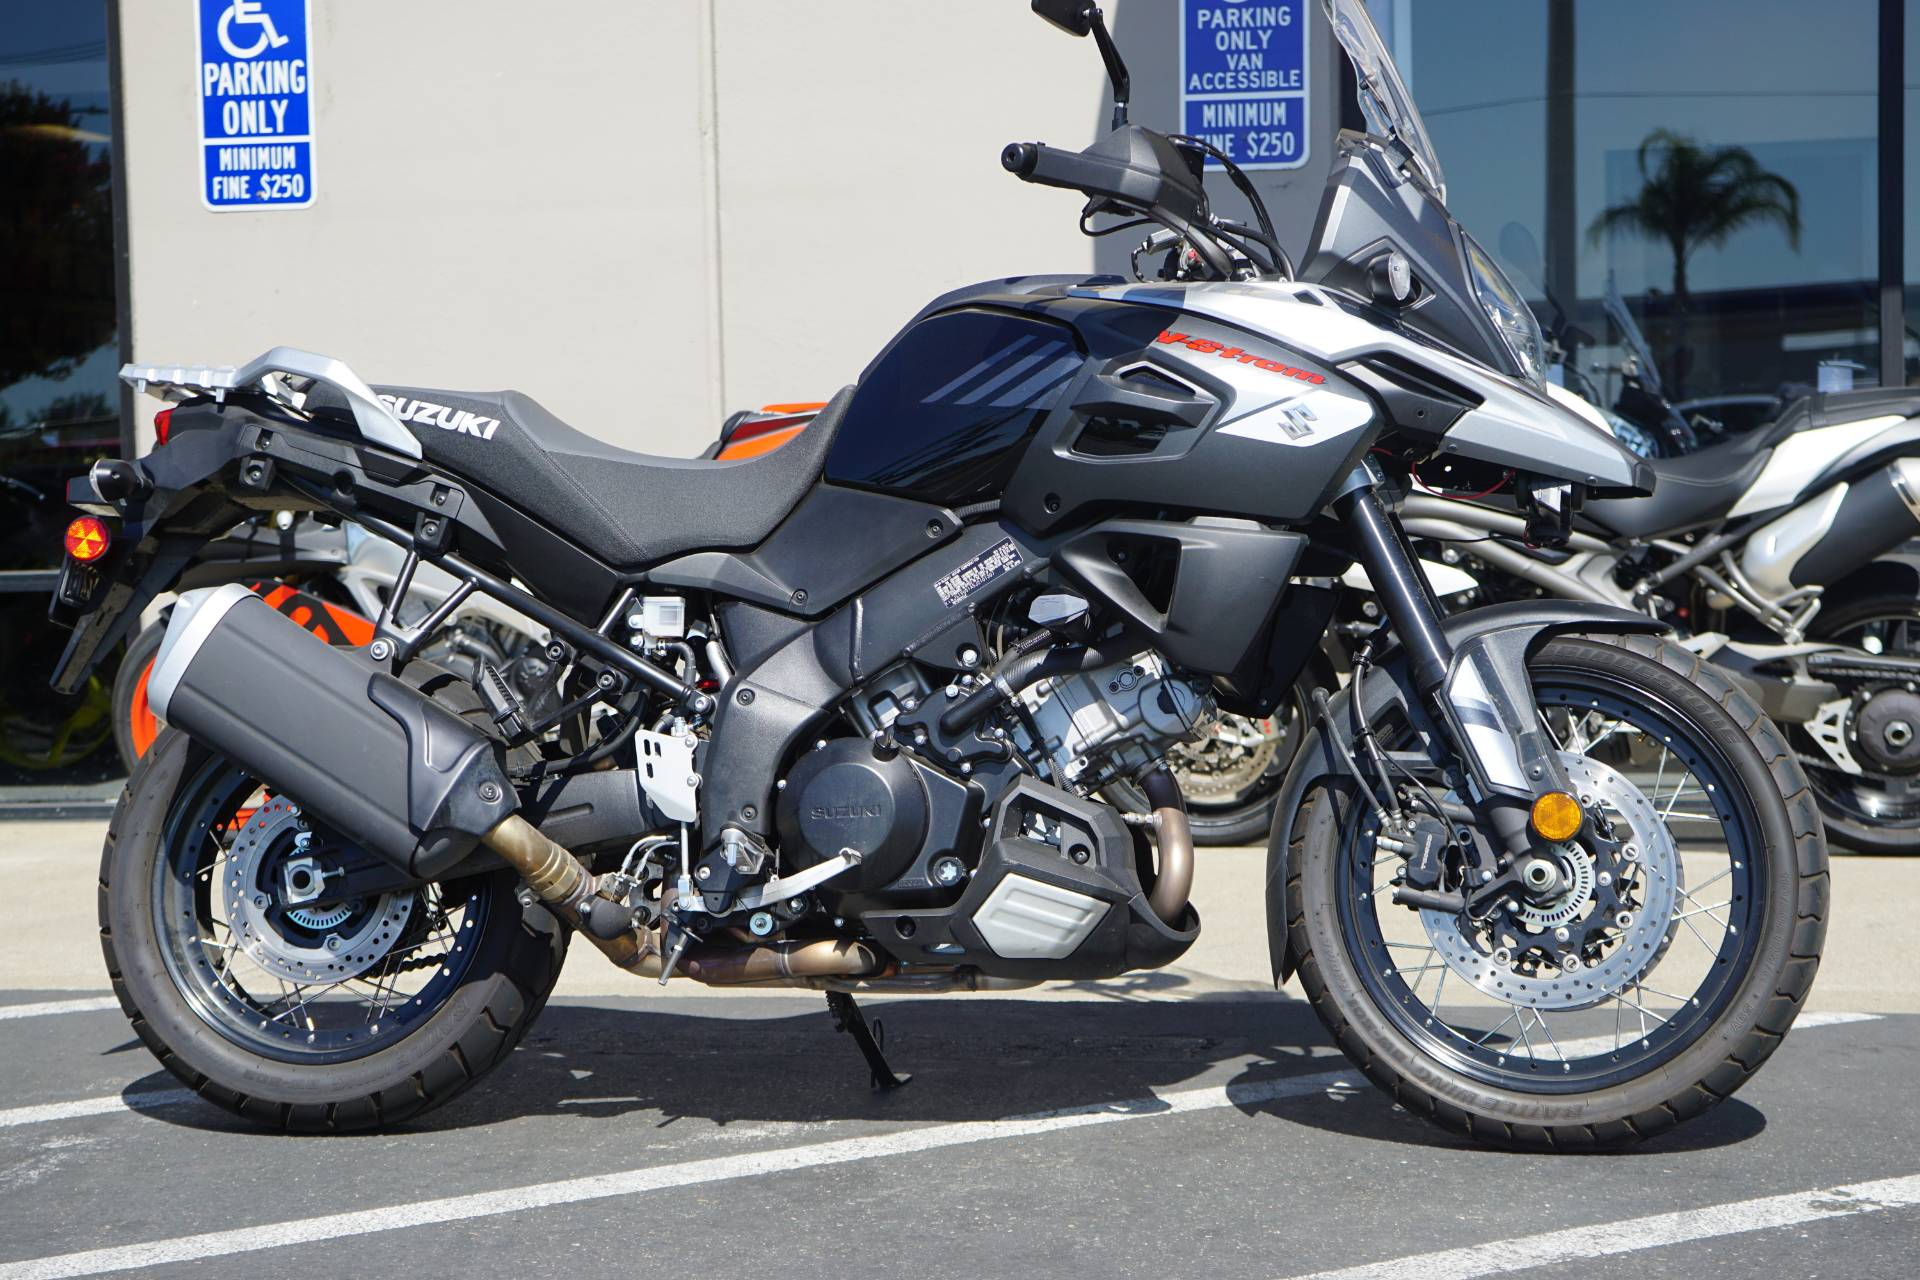 2018 Suzuki V-Strom 1000XT for sale 168790